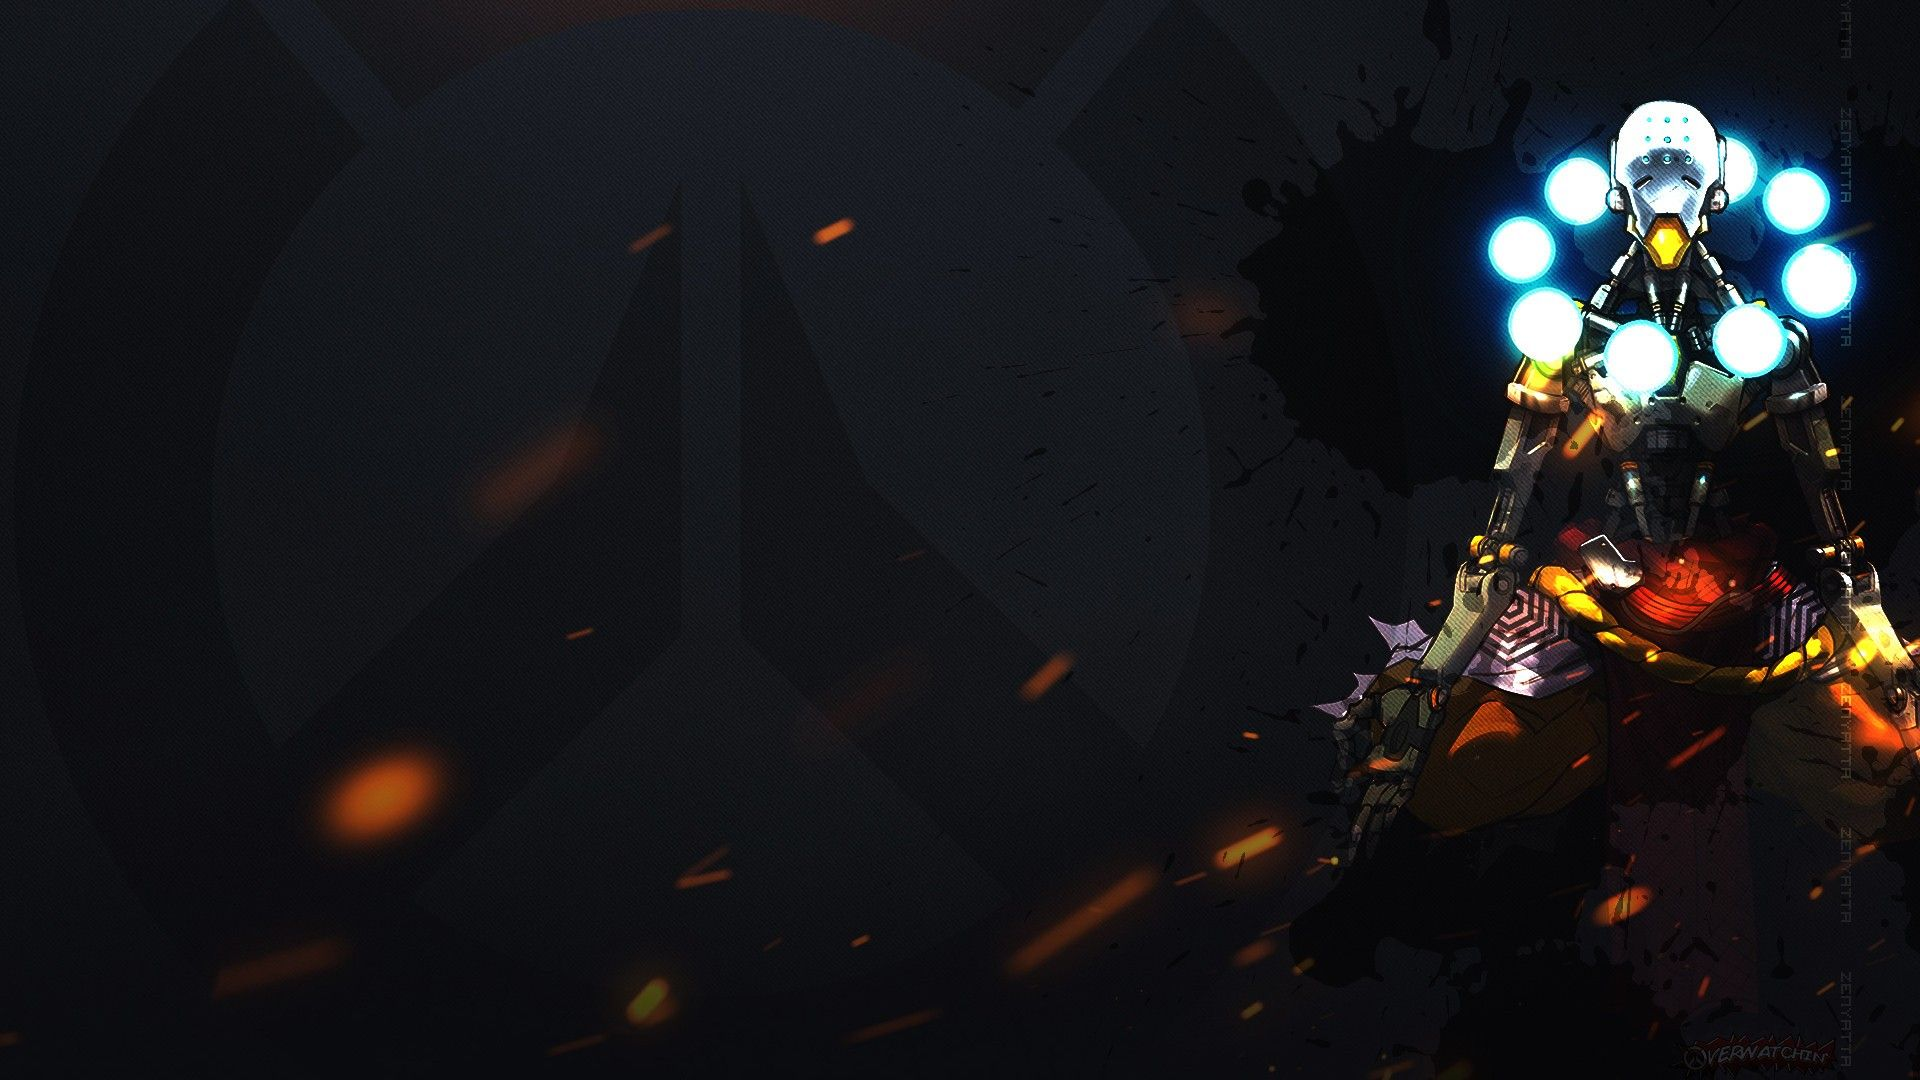 Popular Wallpaper High Quality Overwatch - 66256a9ed6a6cd13651dce1aa02cbc5f  Image_37525.jpg